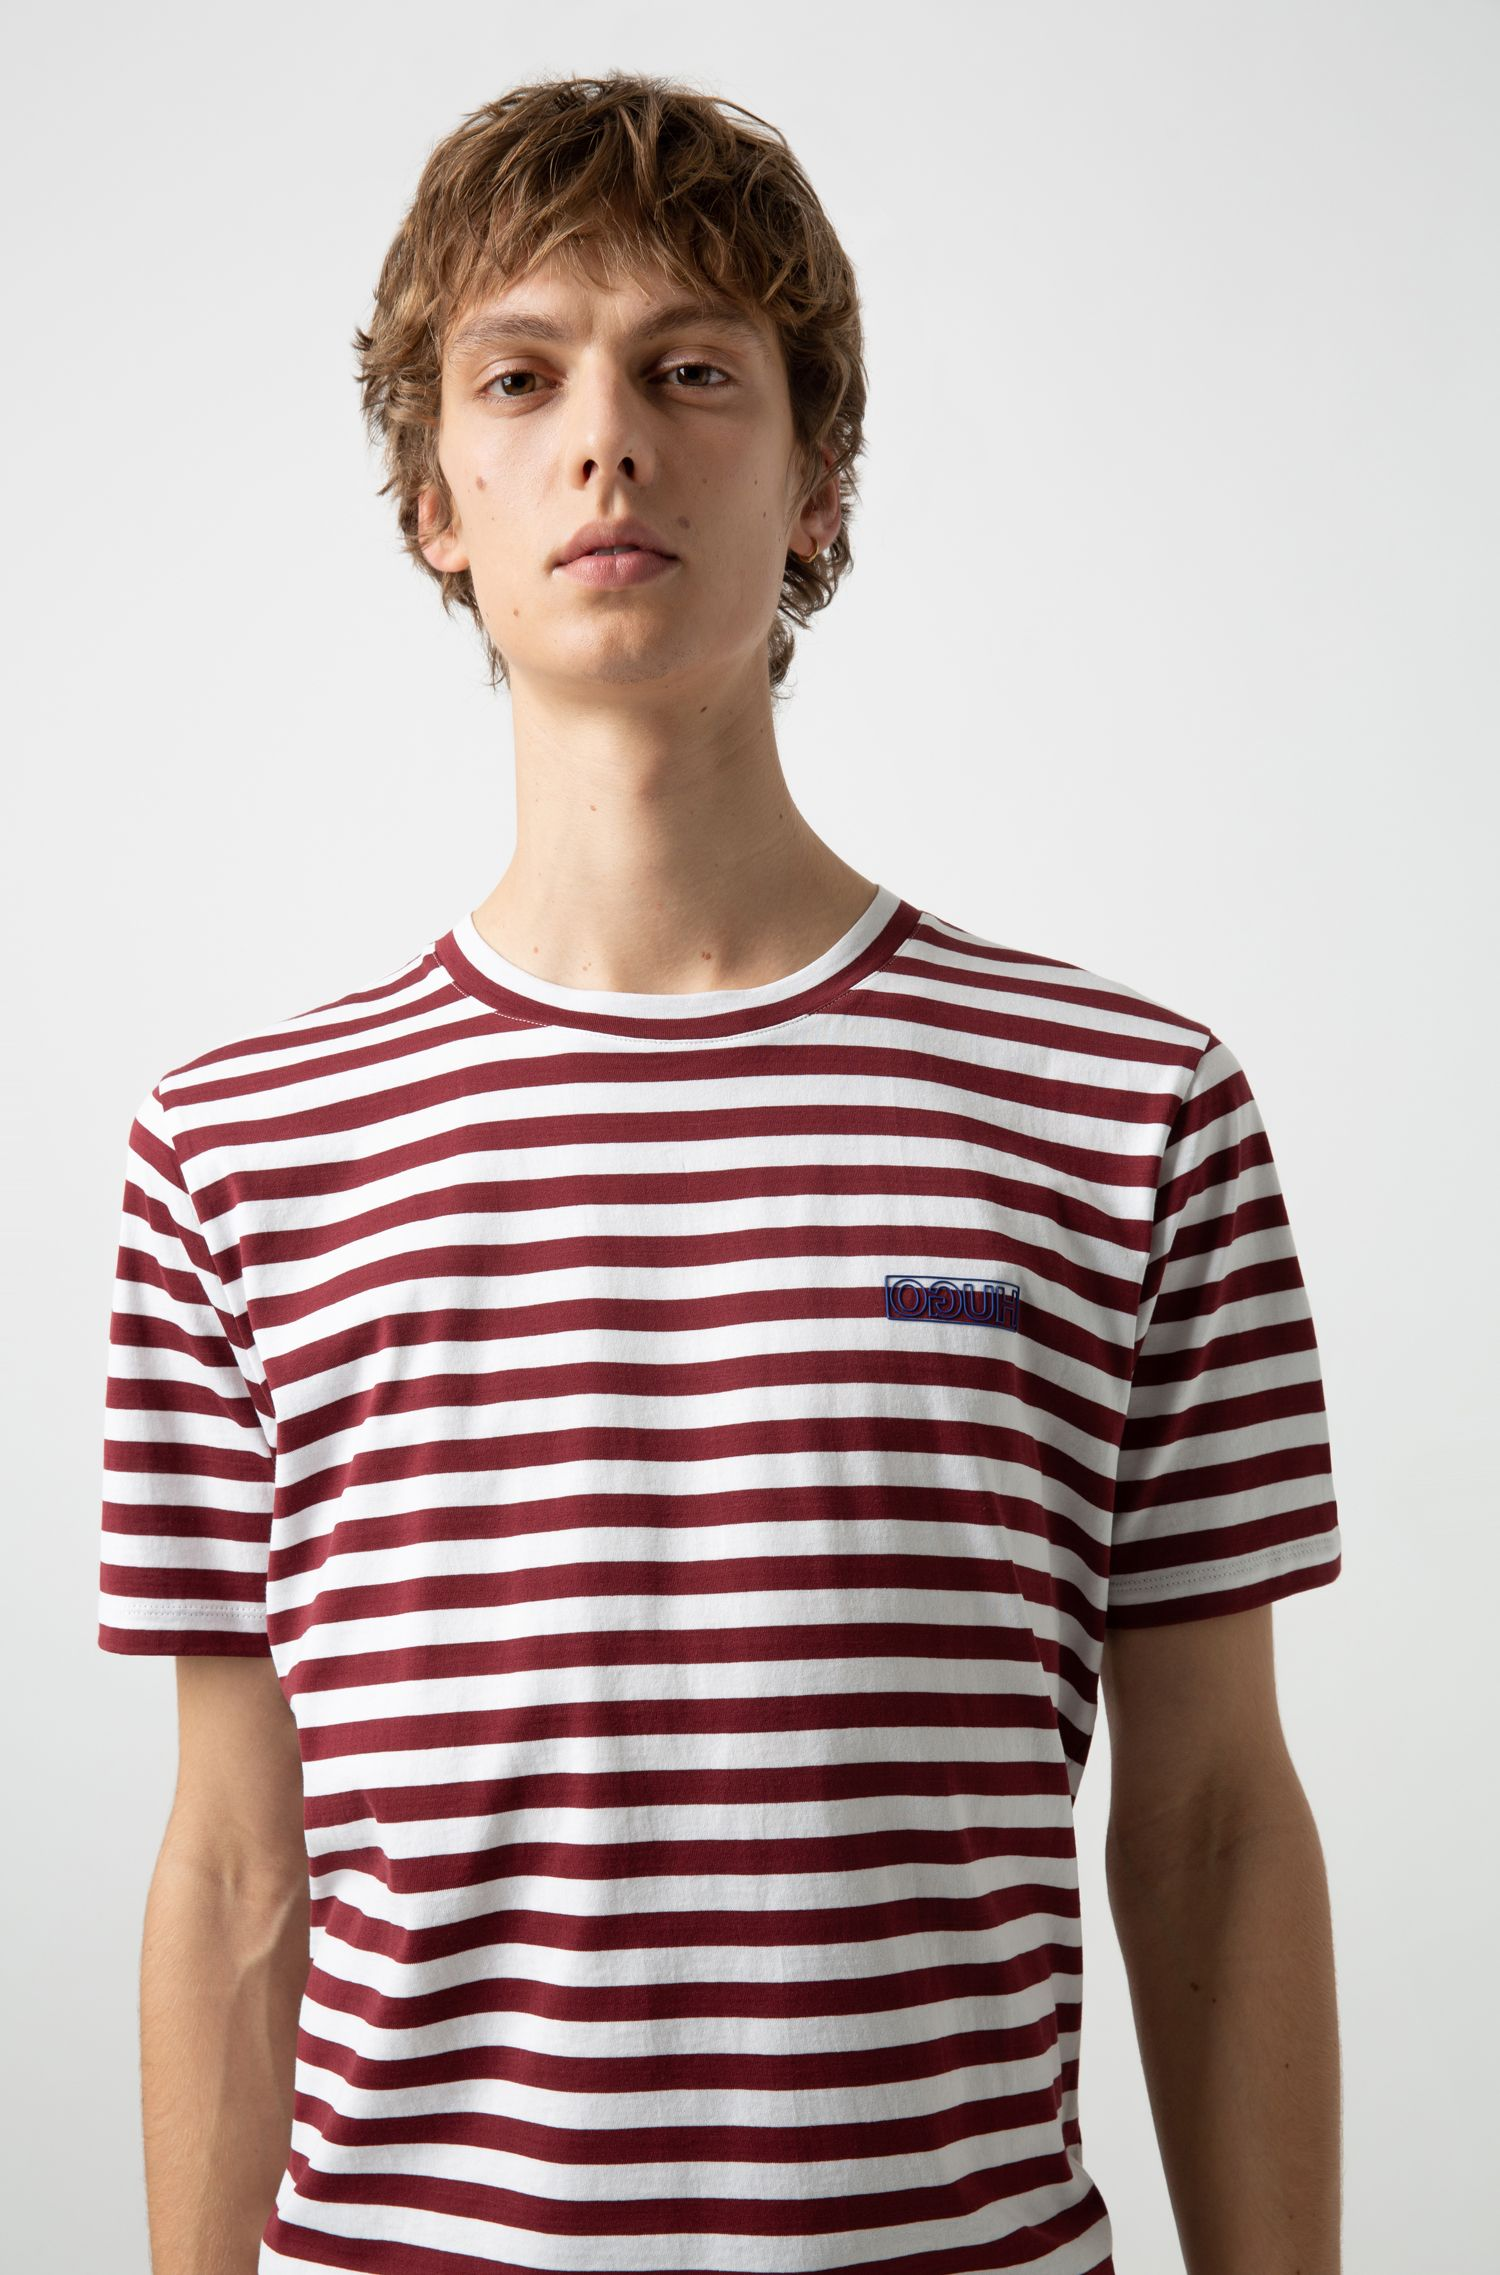 Hugo Boss - Striped T-shirt in single-jersey cotton with reverse logo - 3